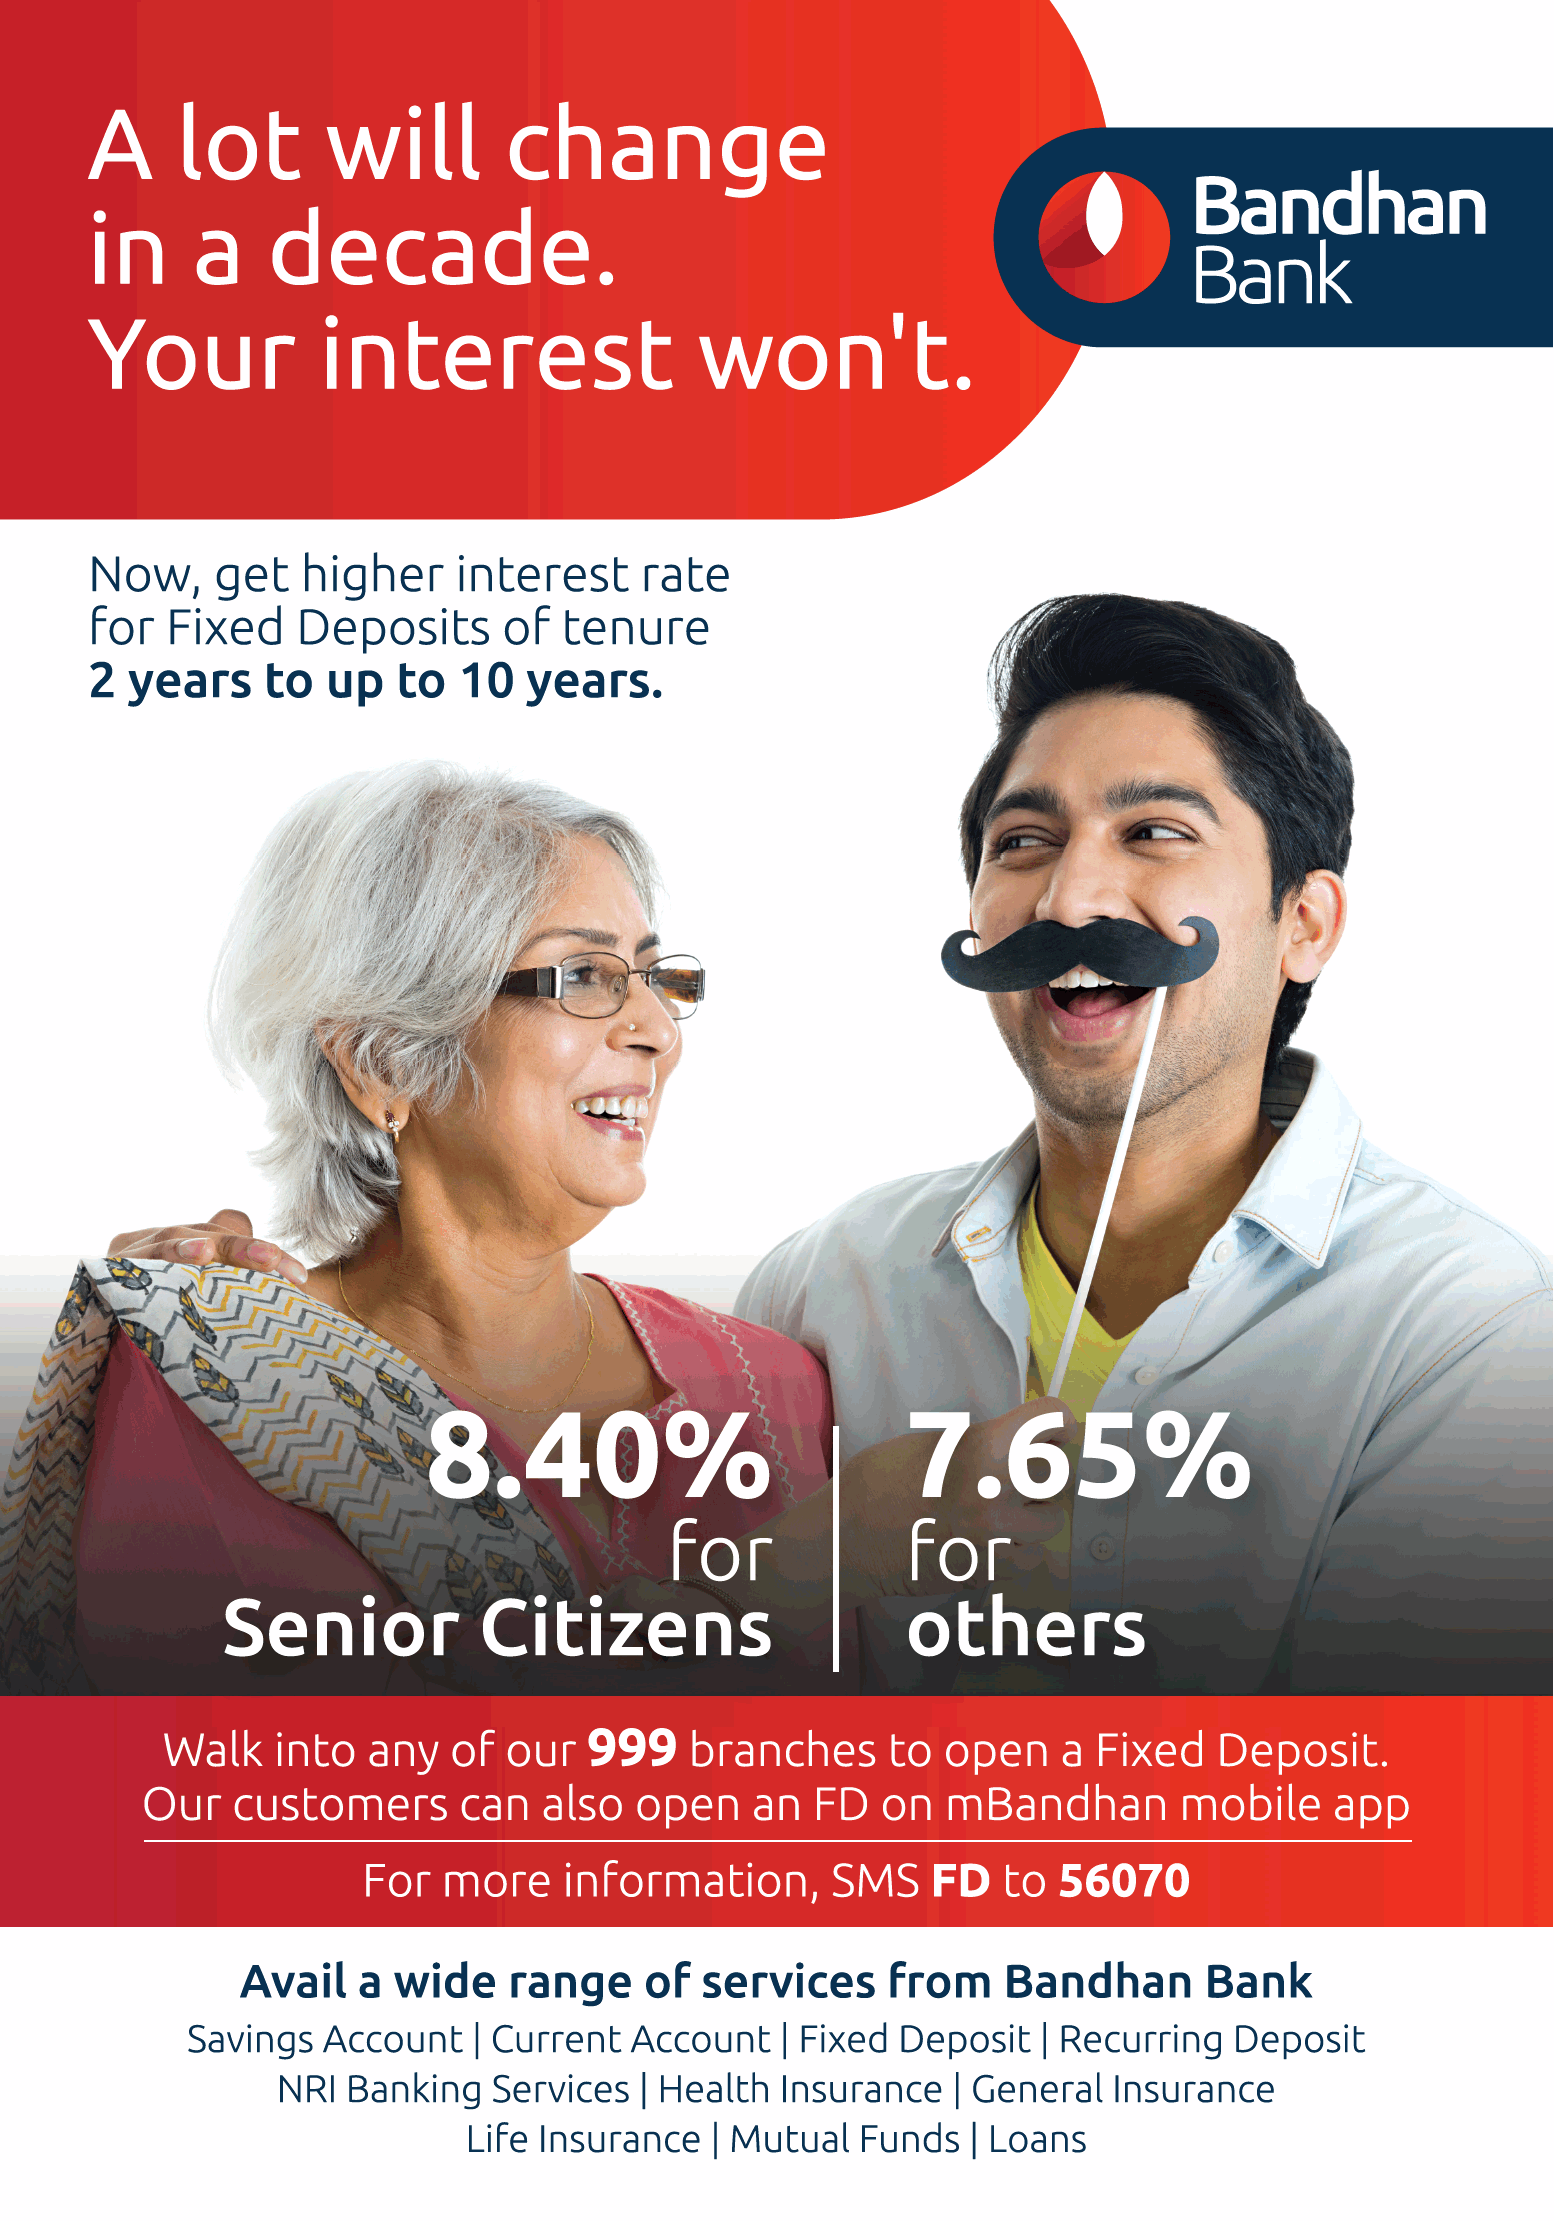 bandhan-bank-get-higher-interest-rate-for-fixed-deposits-ad-times-of-india-delhi-14-07-2019.png